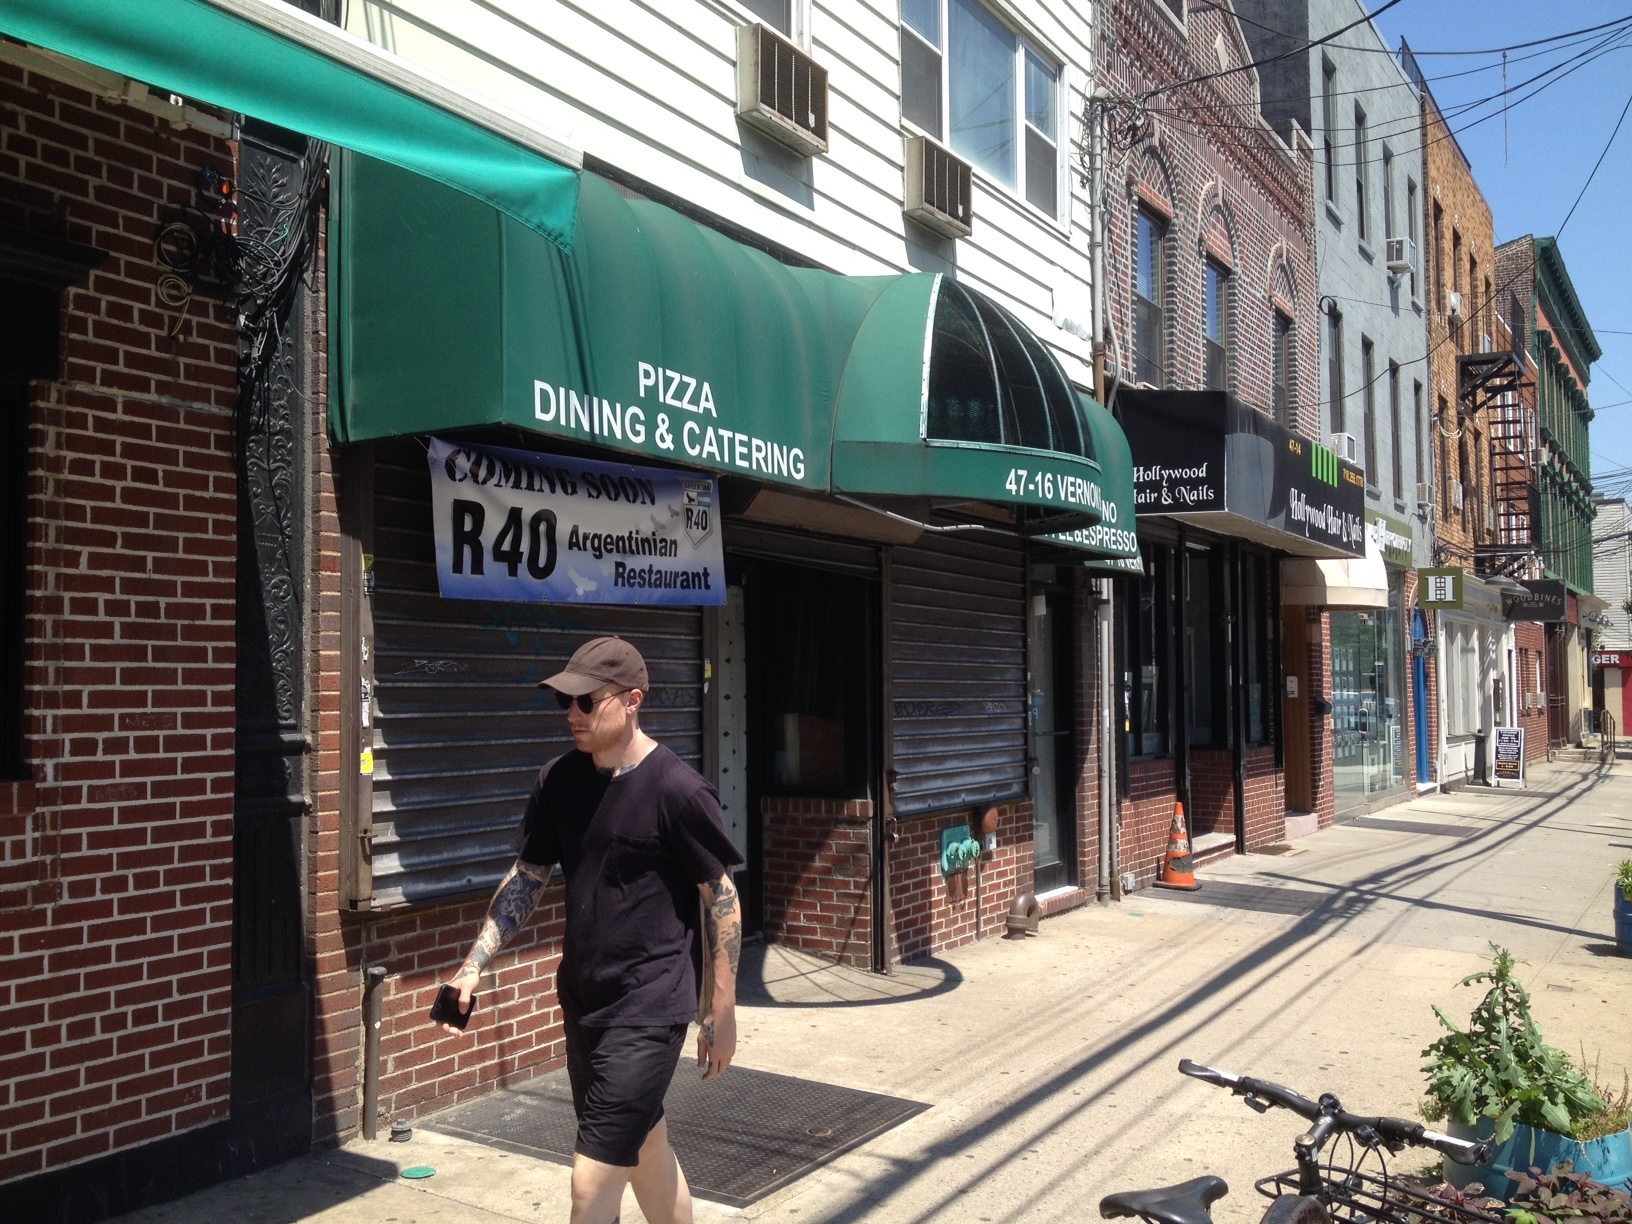 Argentinian Restaurant R40 Coming To Vernon Blvd In Lic